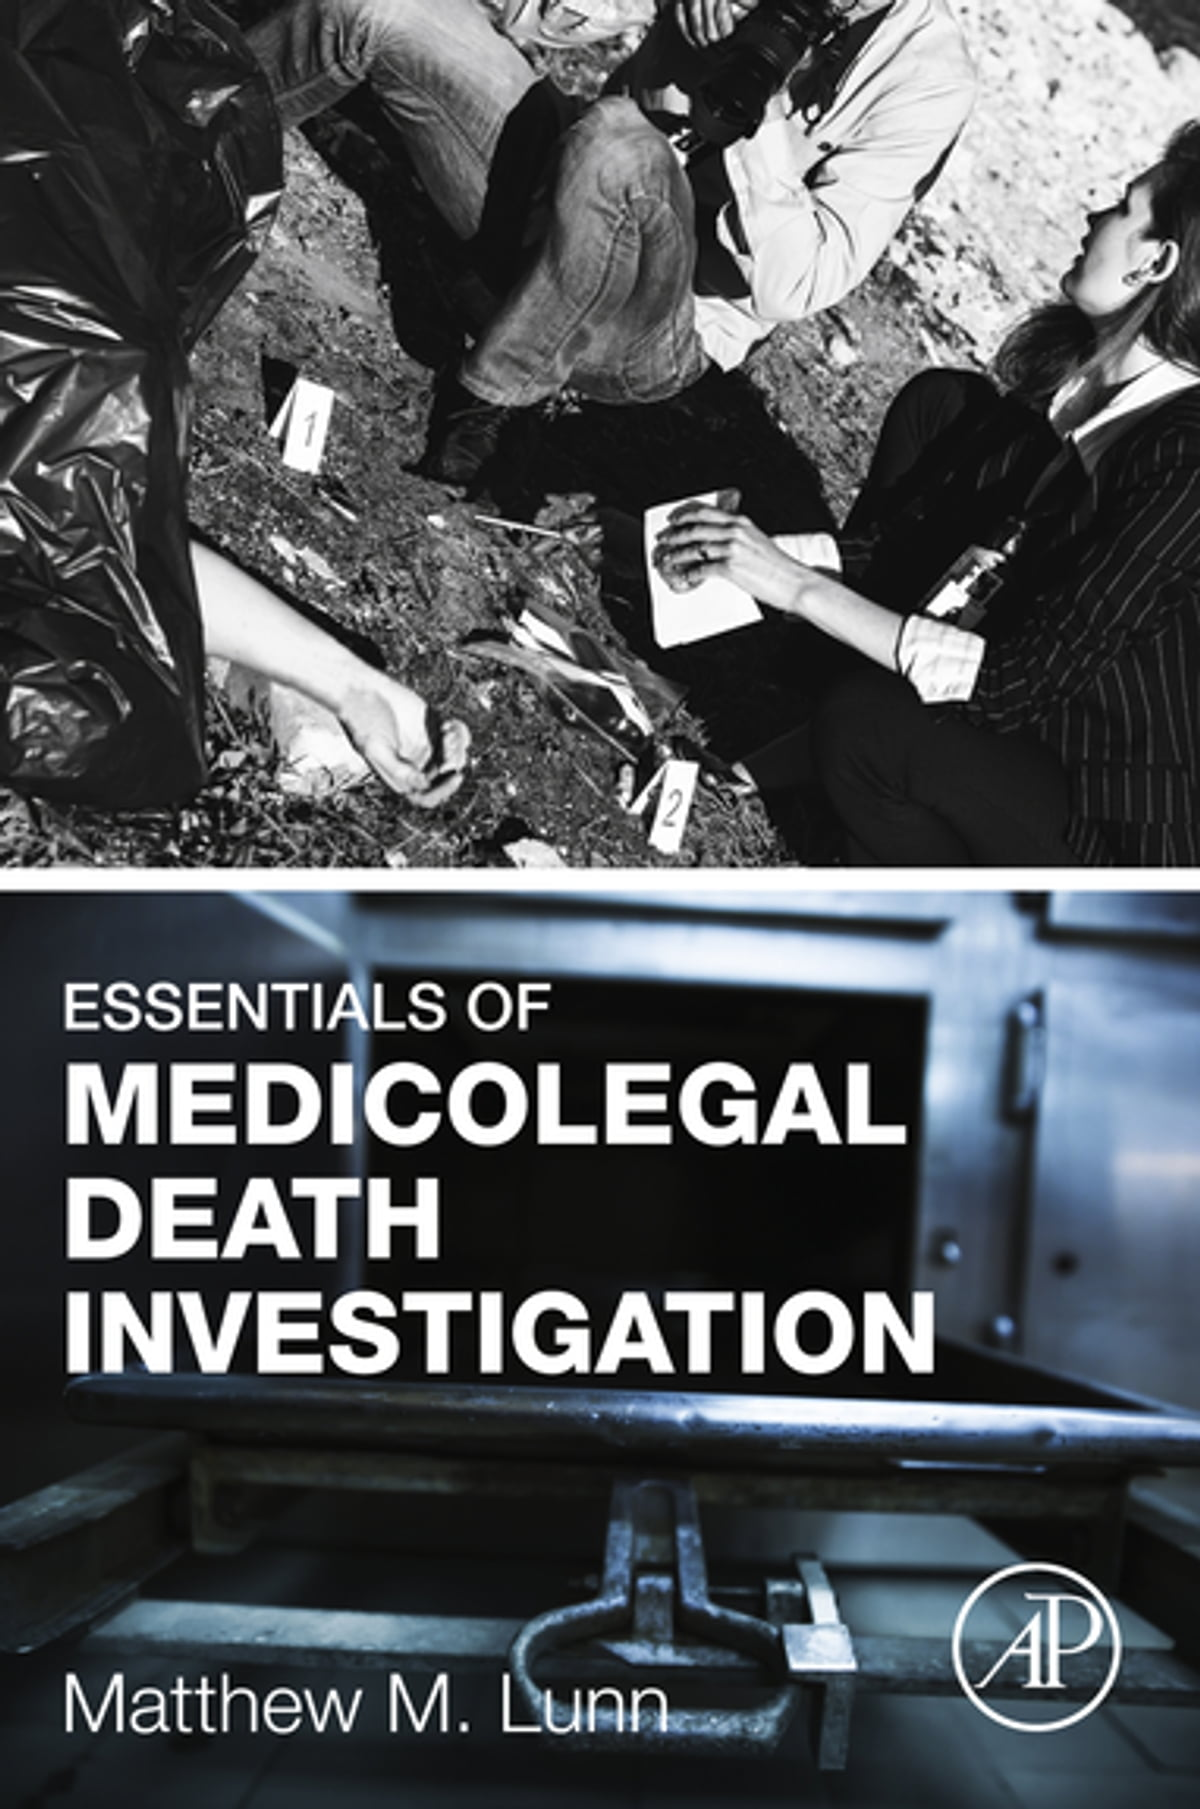 Forensic Death Investigator Cover Letter occupational health ...